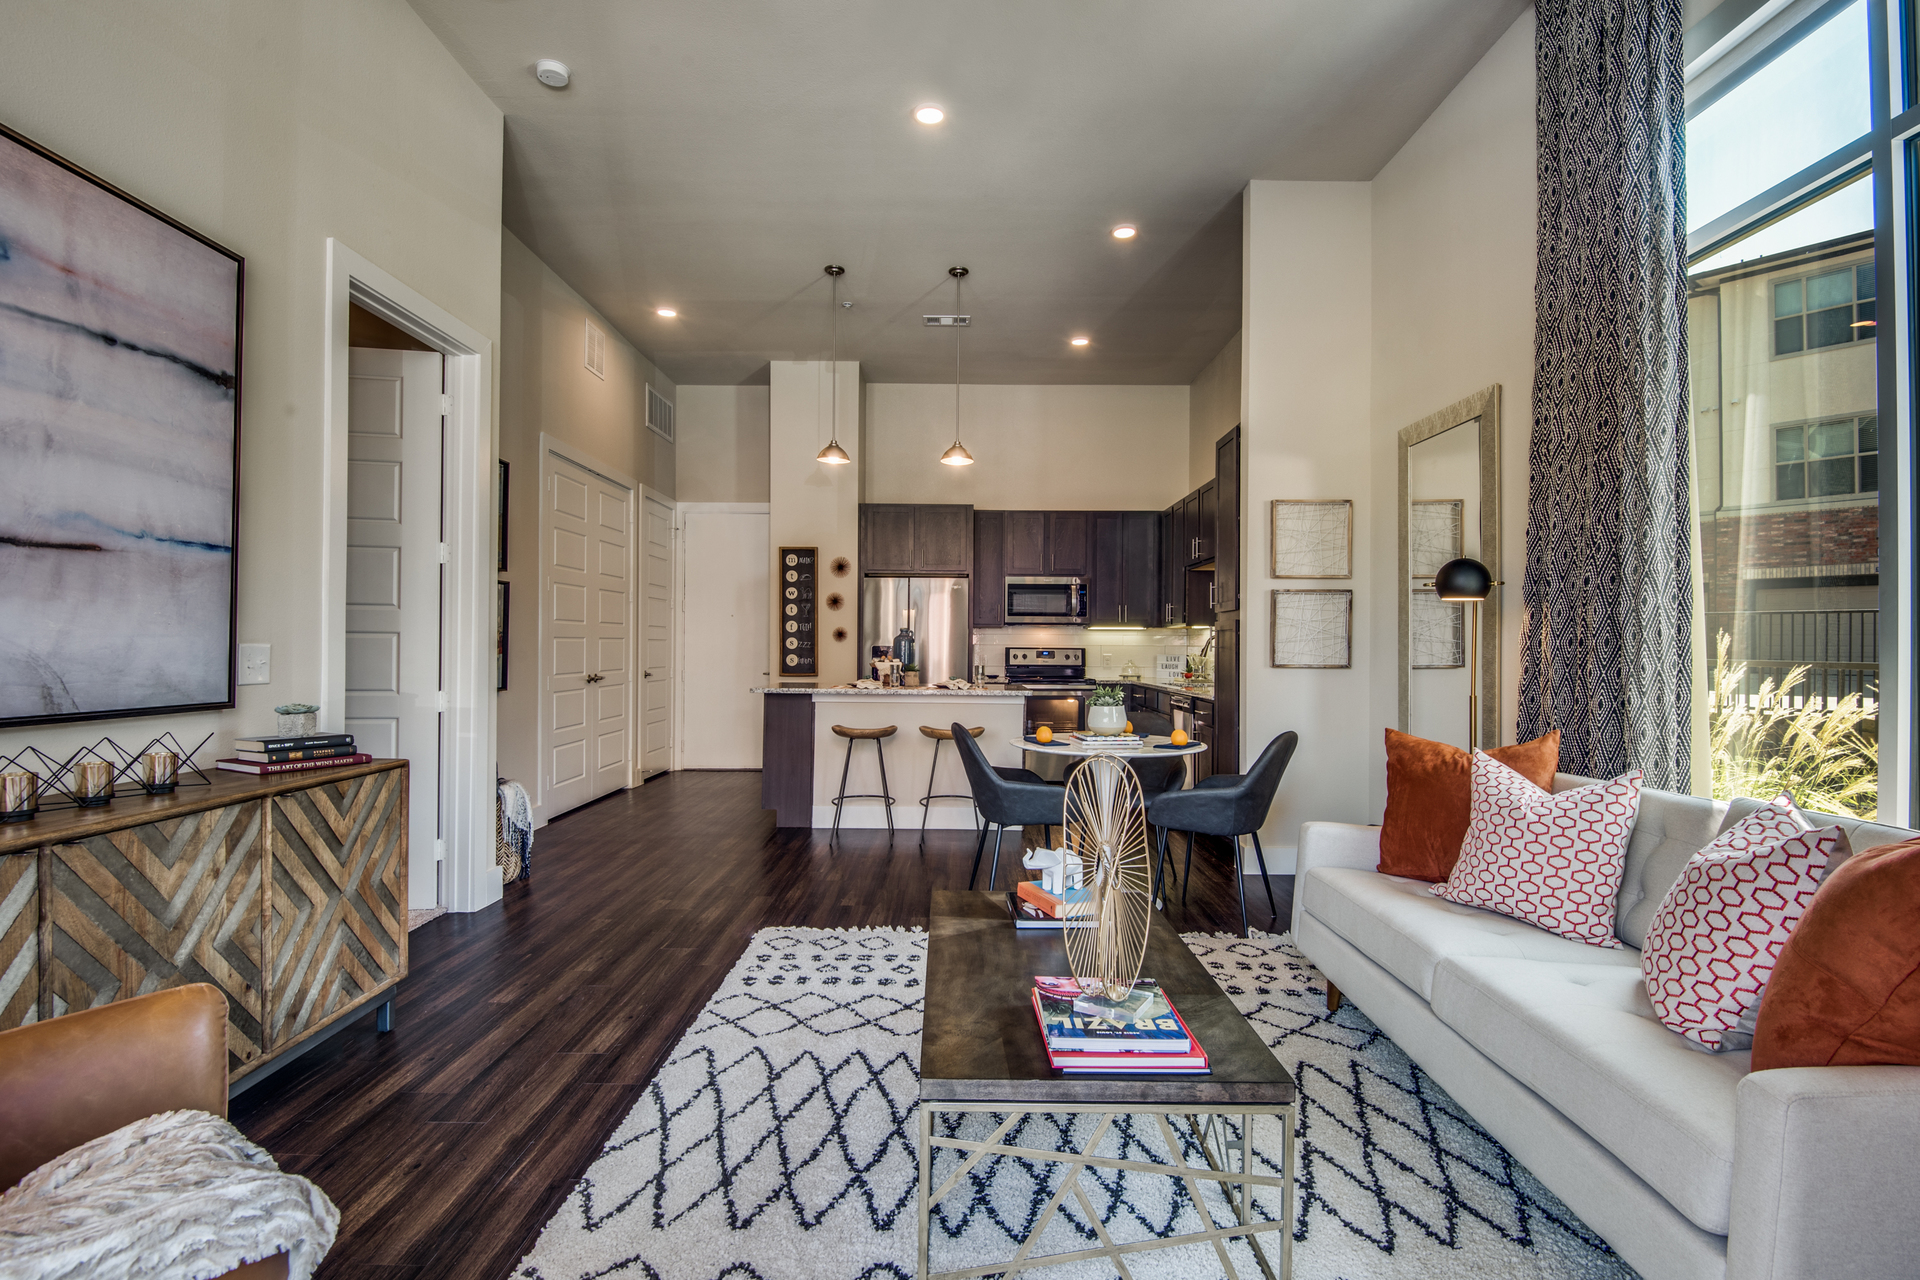 Hillstone River Walk offers cozy apartments with sleek wood flooring, by Hensley Rachel Lamkin, Inc.